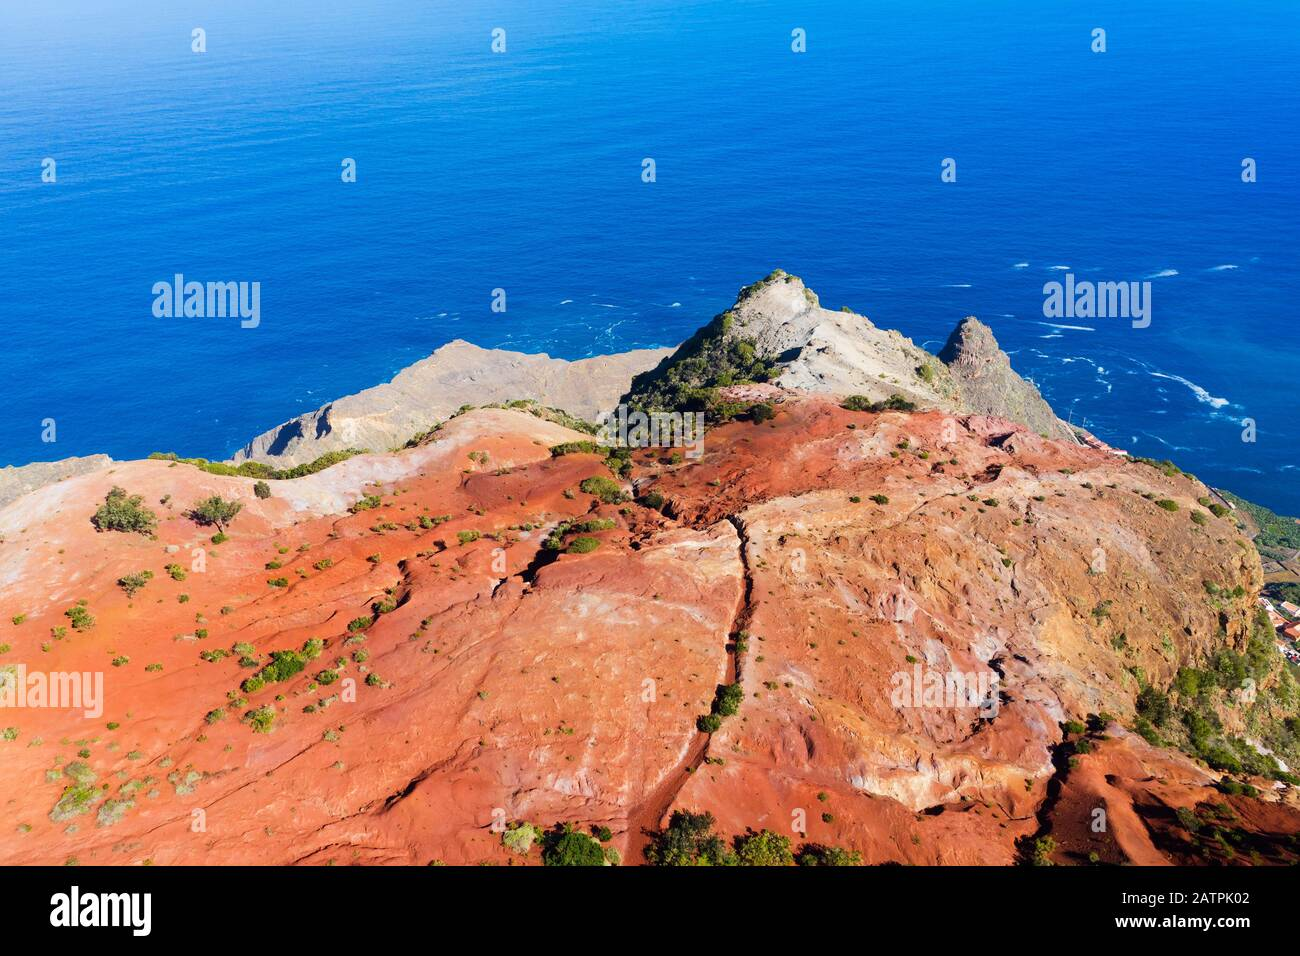 Eroded mountain slope with red earth at the coast, near Agulo, drone recording, La Gomera, Canary Islands, Spain Stock Photo